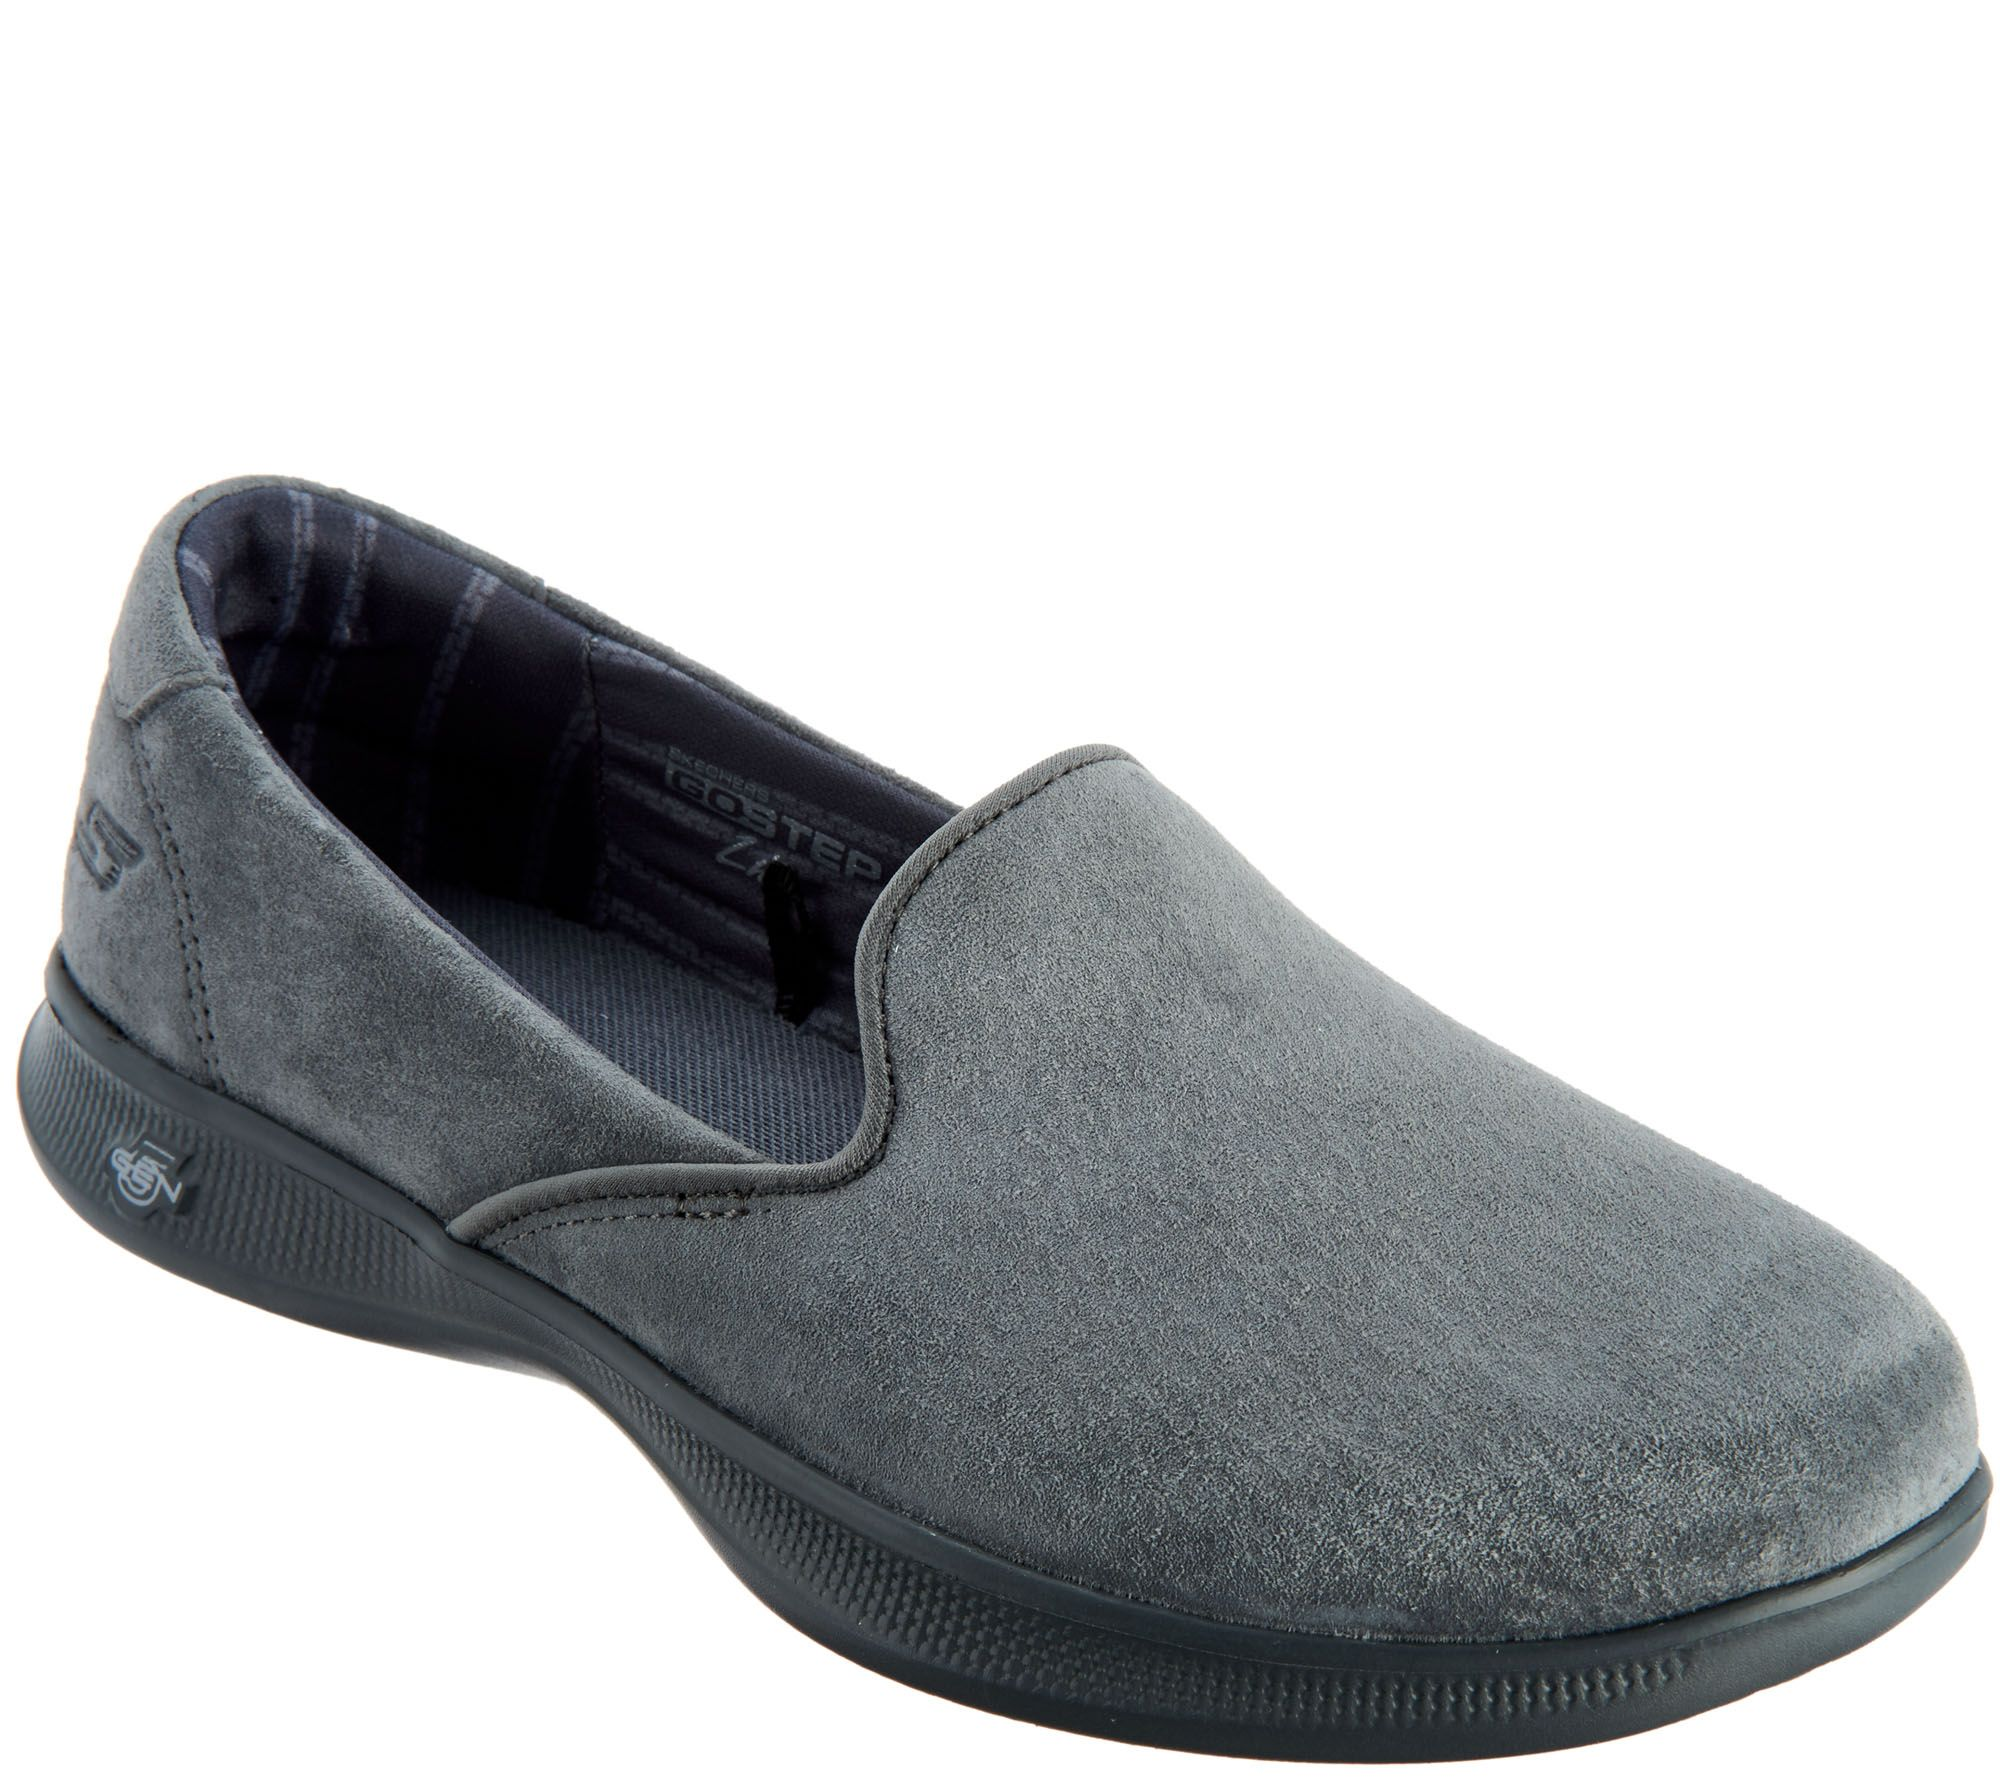 cfcebc2f819d Skechers GOstep Lite Suede Slip-On Shoes - Indulge - Page 1 — QVC.com